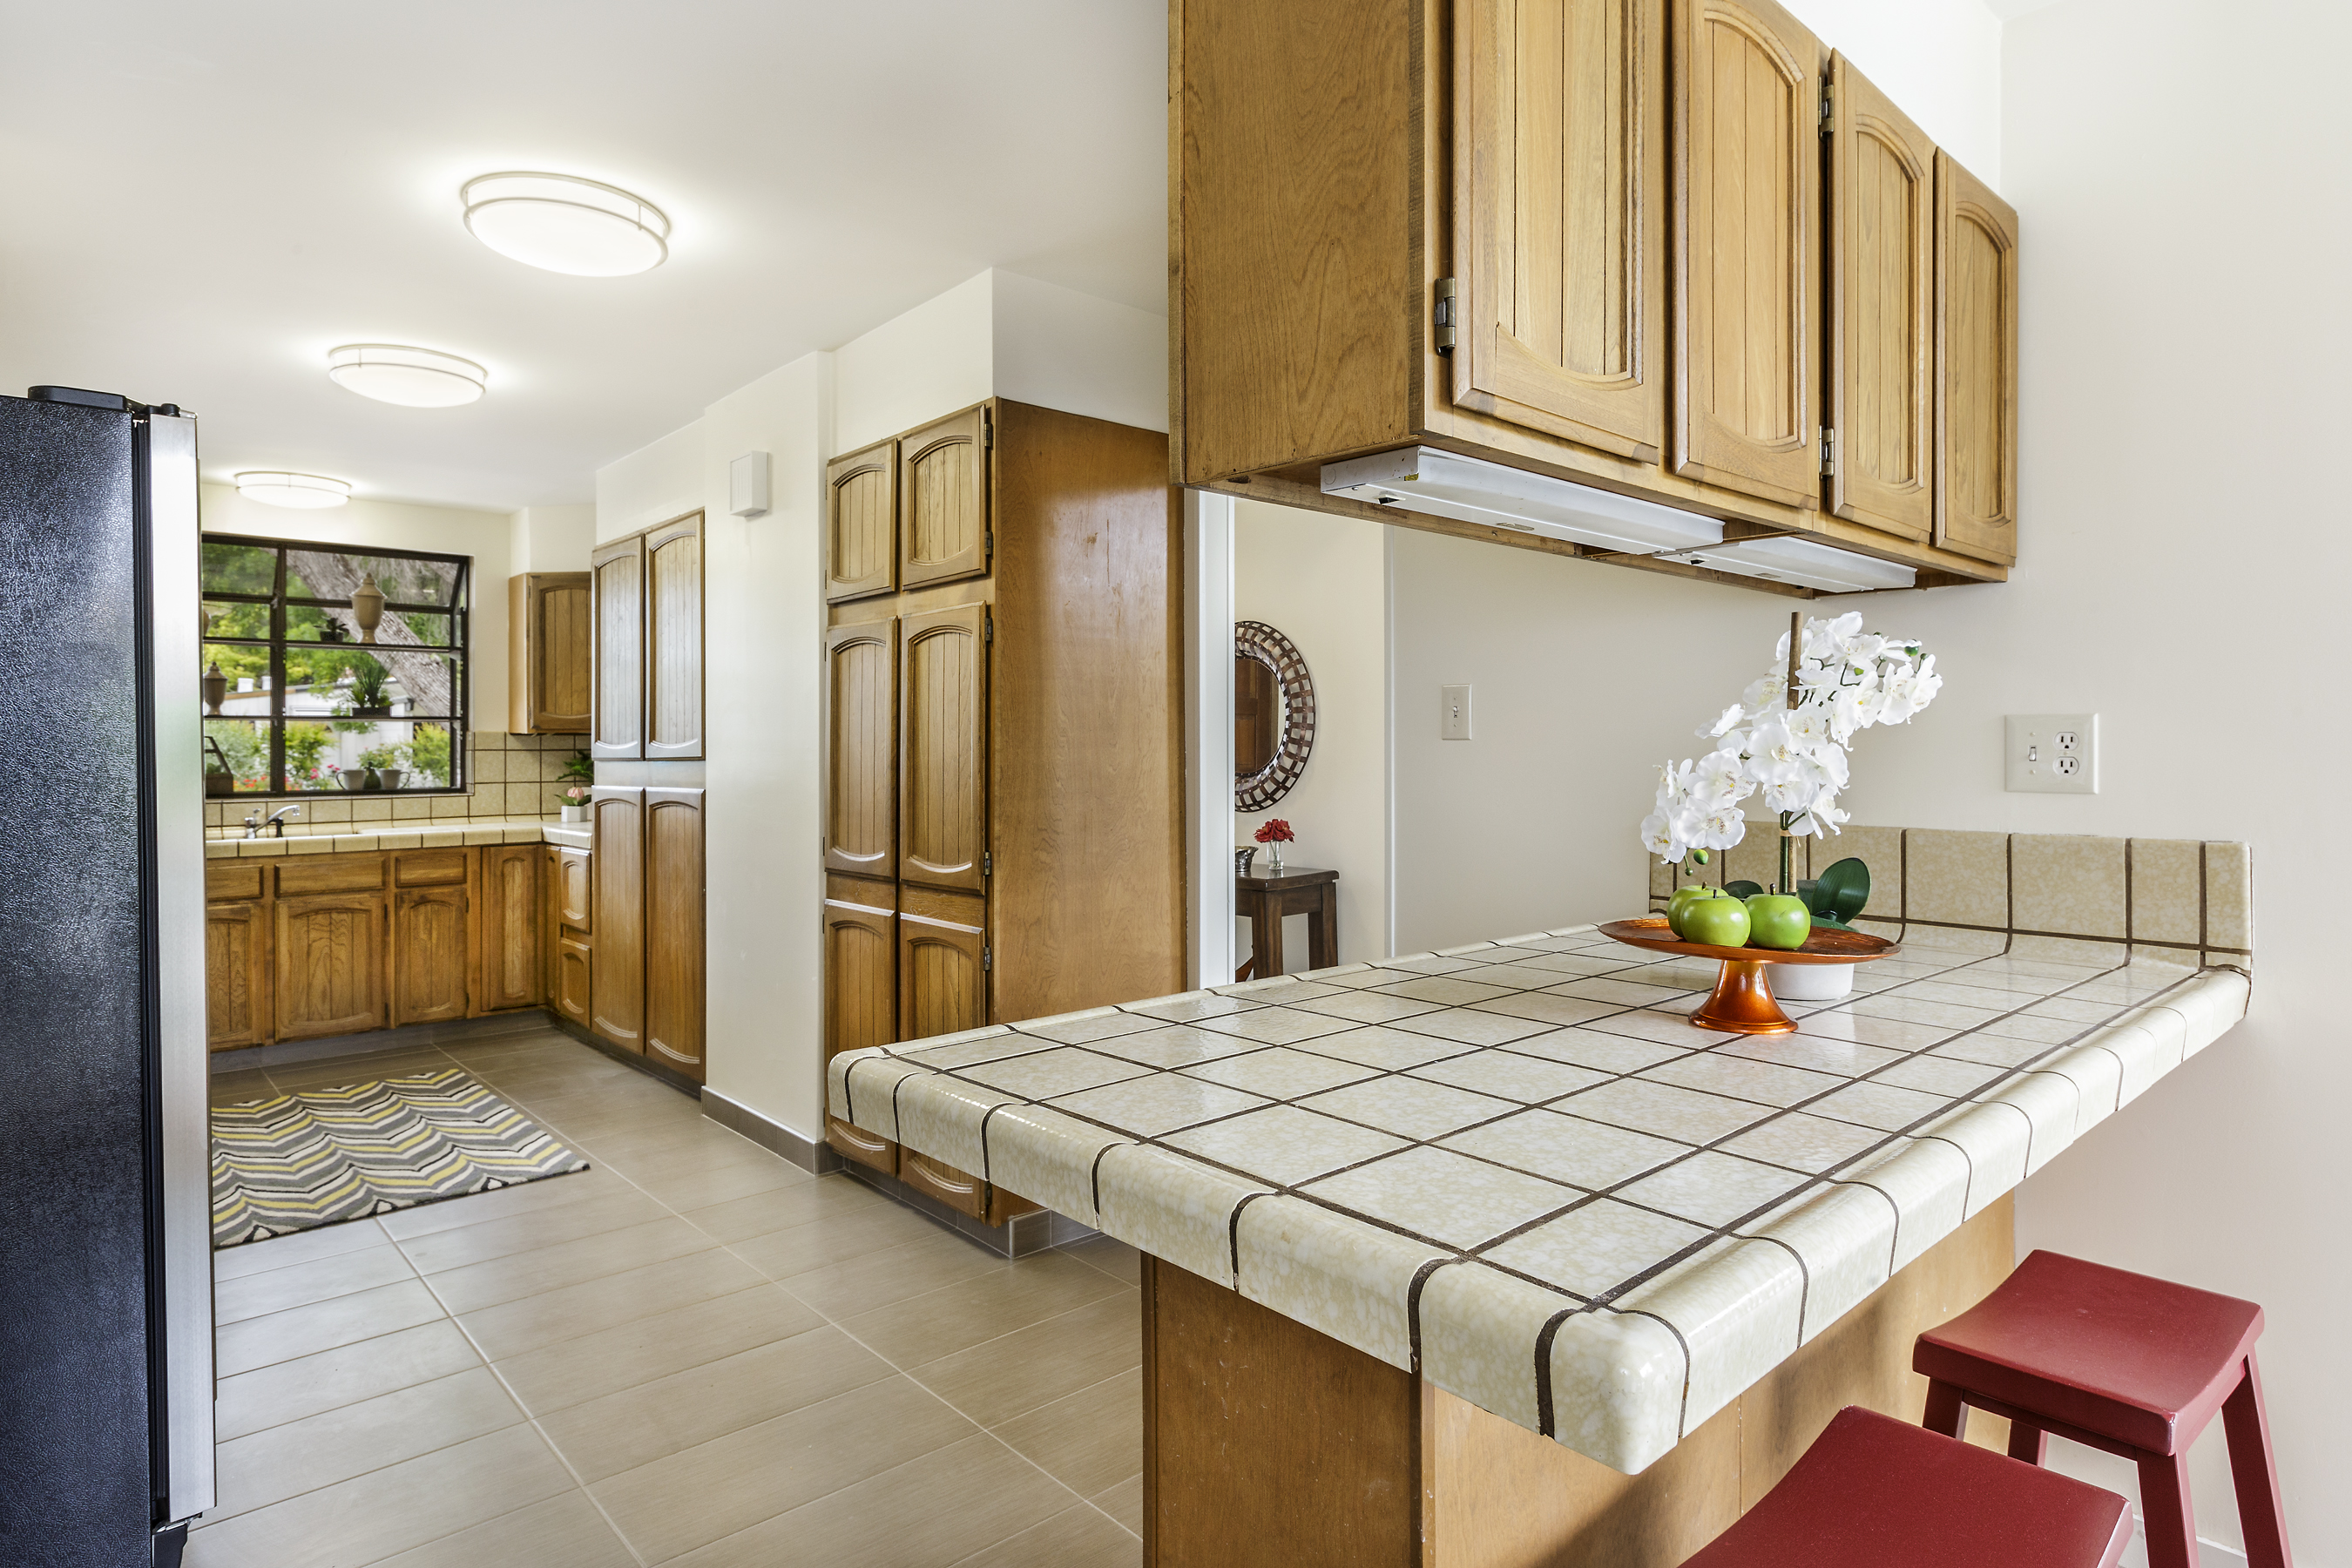 08-172-Atherwood-kitchen-high-res